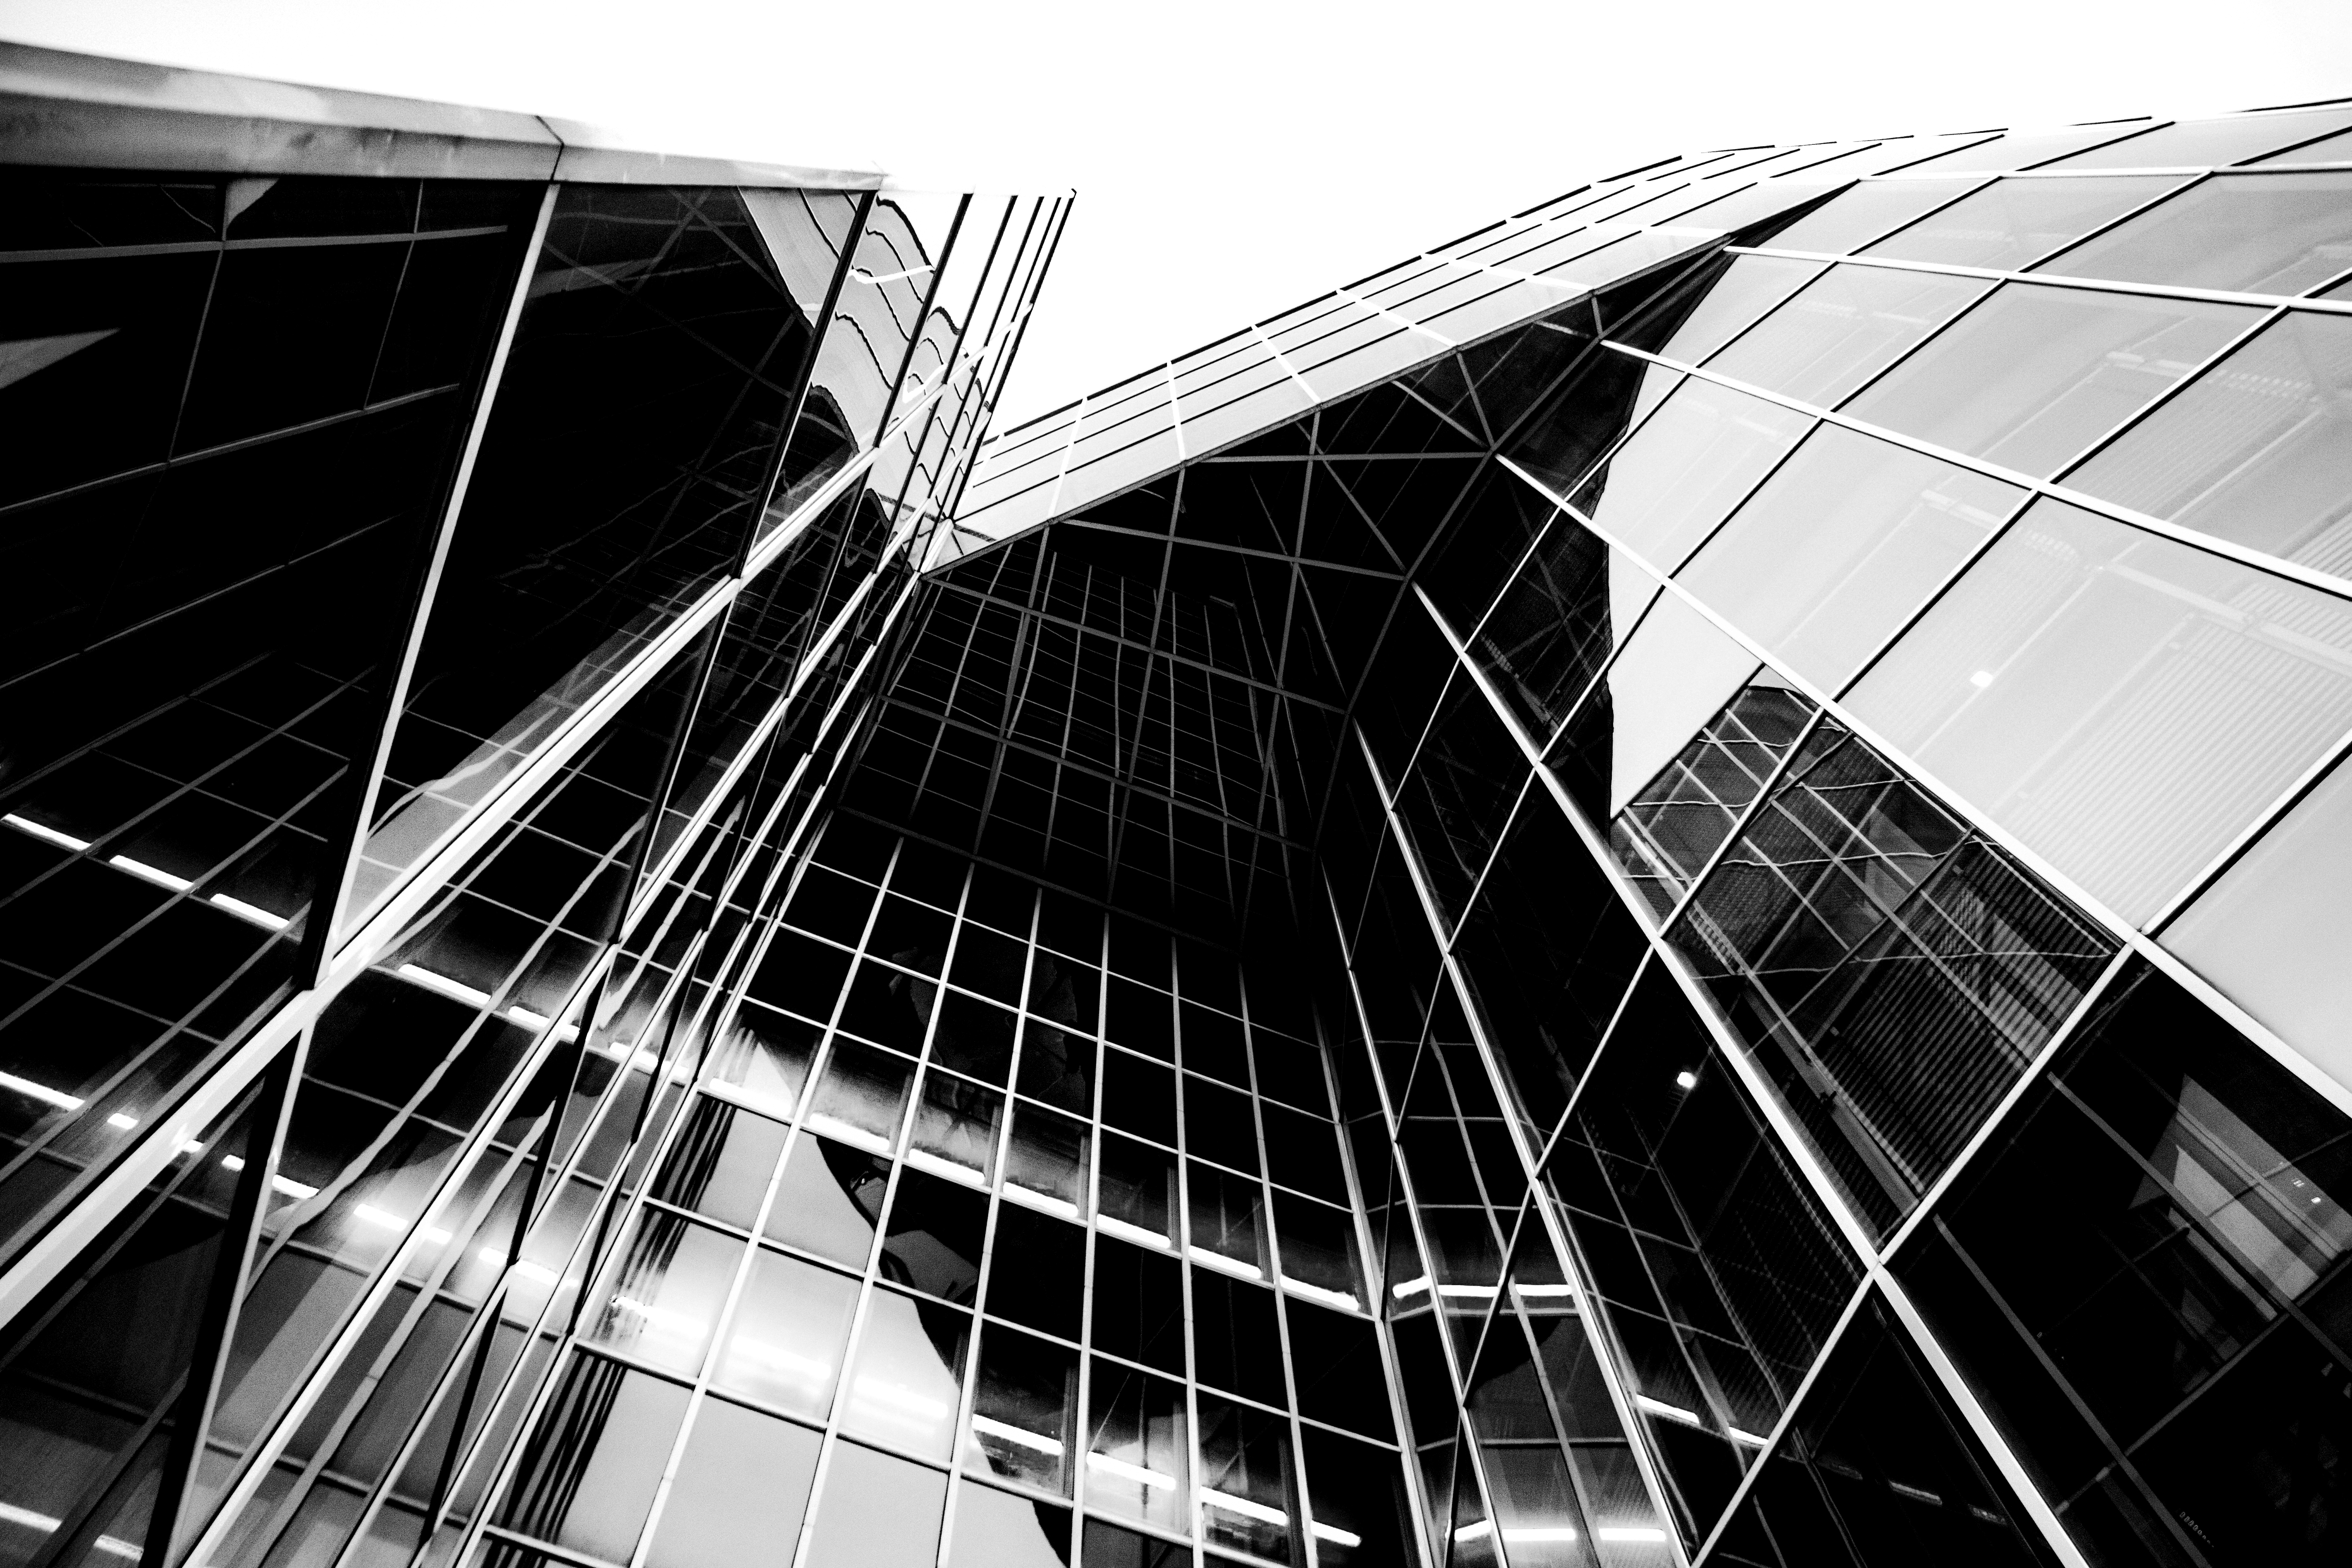 building glass architecture skyscraper windows rise facade monochrome structure shape line low angle headquarters symmetry perspective shot metropolis innovation pattern